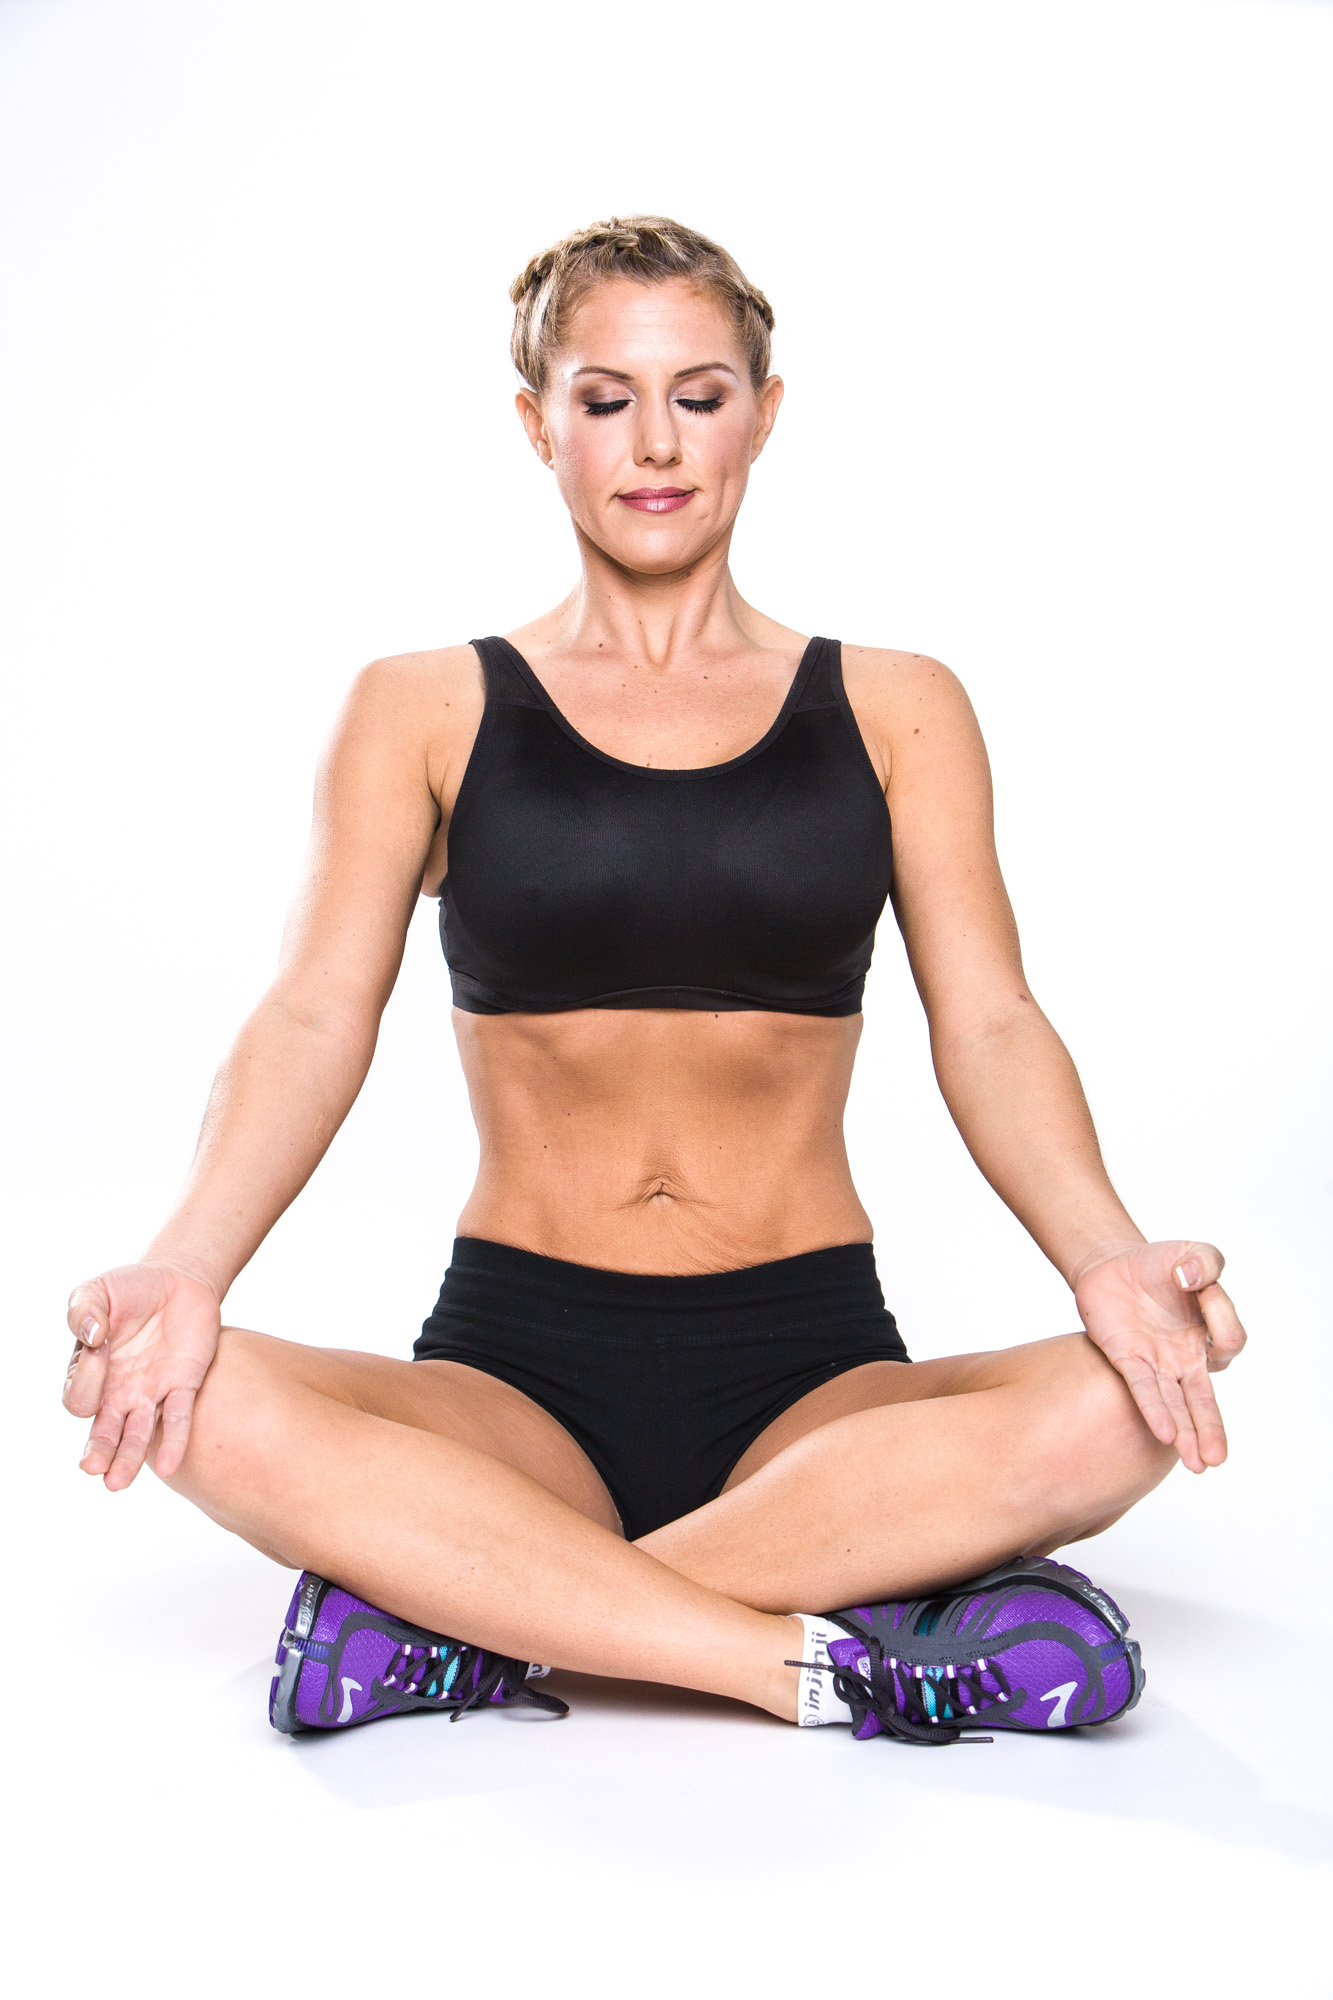 Drawing your navel to the spine, engaging bandas, hands in recieiving & all is one positiioning.